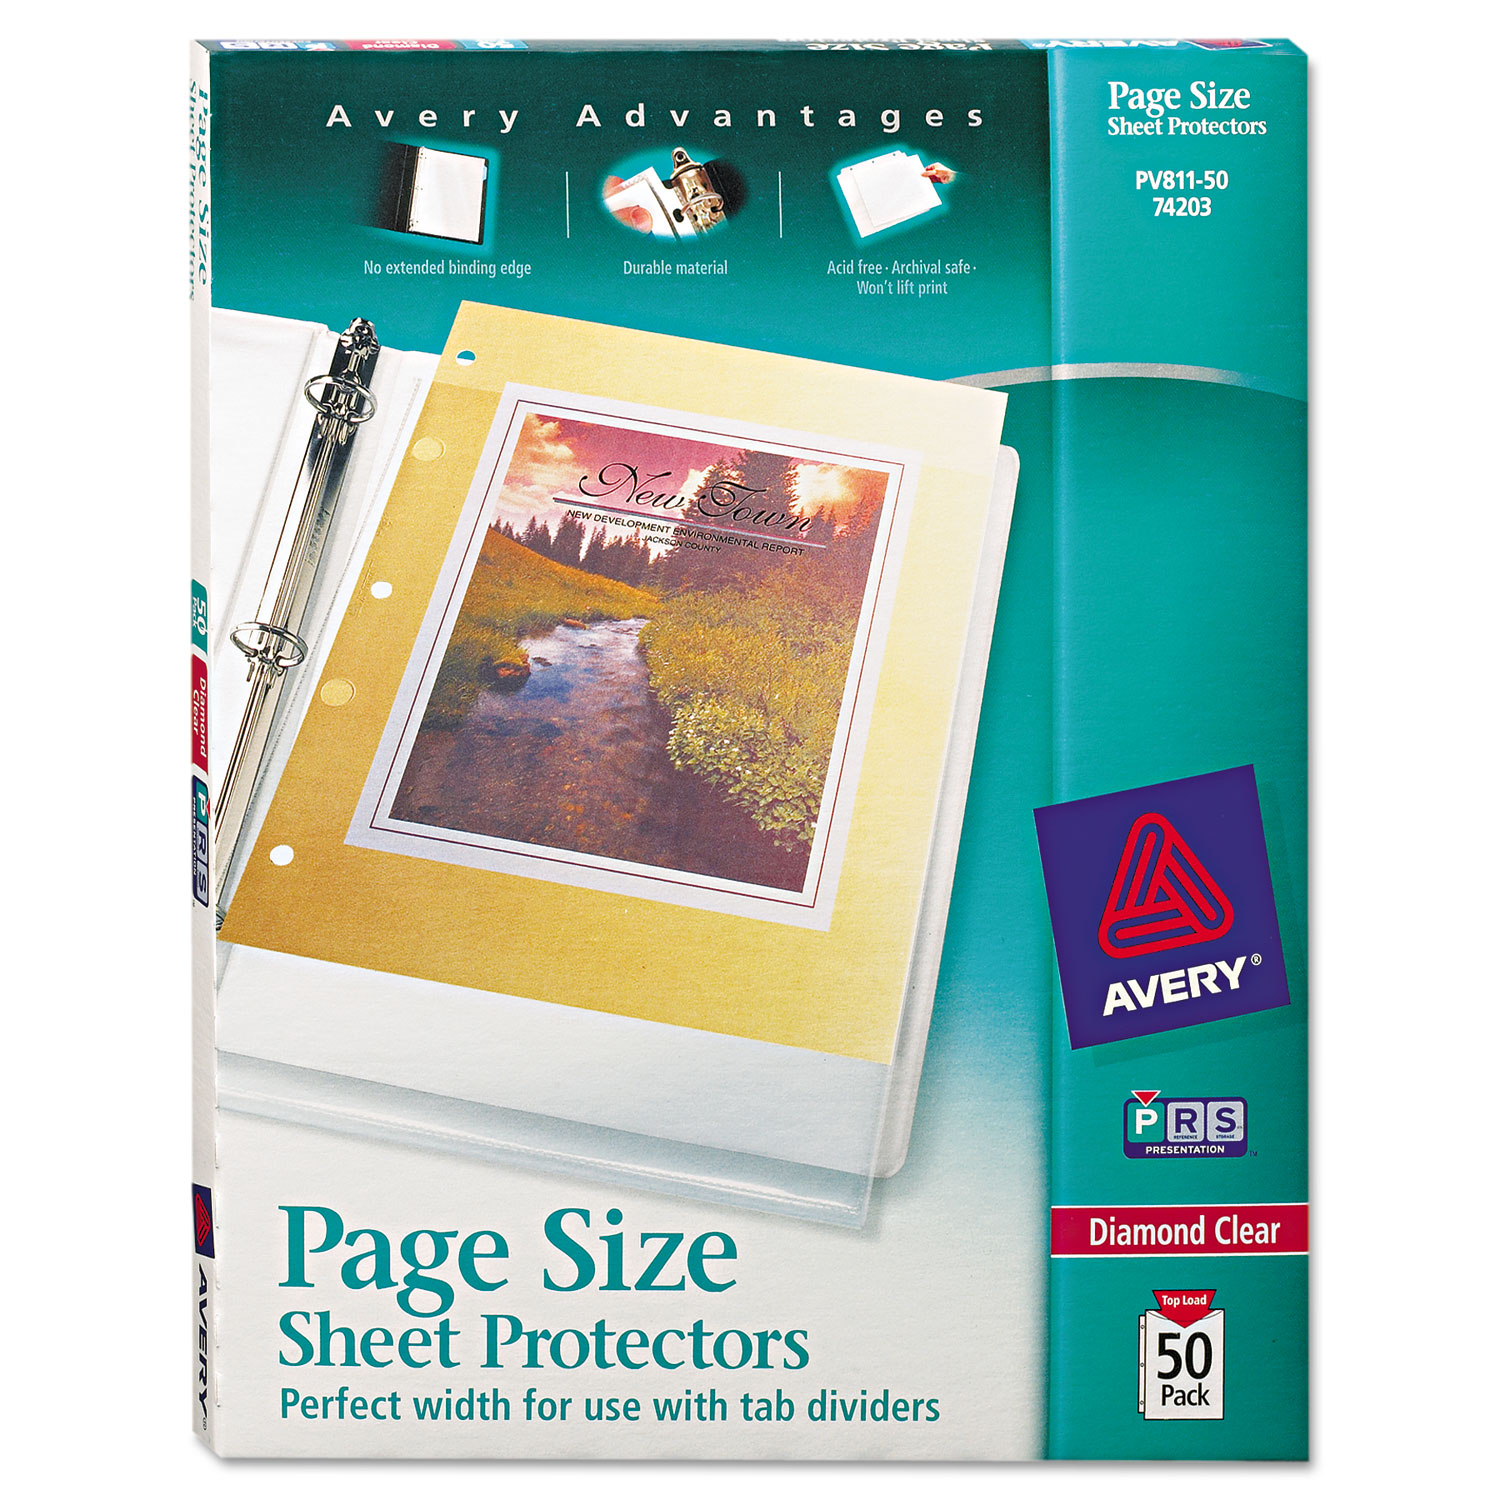 Averyr diamond clear page size sheet protectors 50pack 74203 averyr diamond clear page size sheet protectors 50pack 74203 walmart colourmoves Choice Image